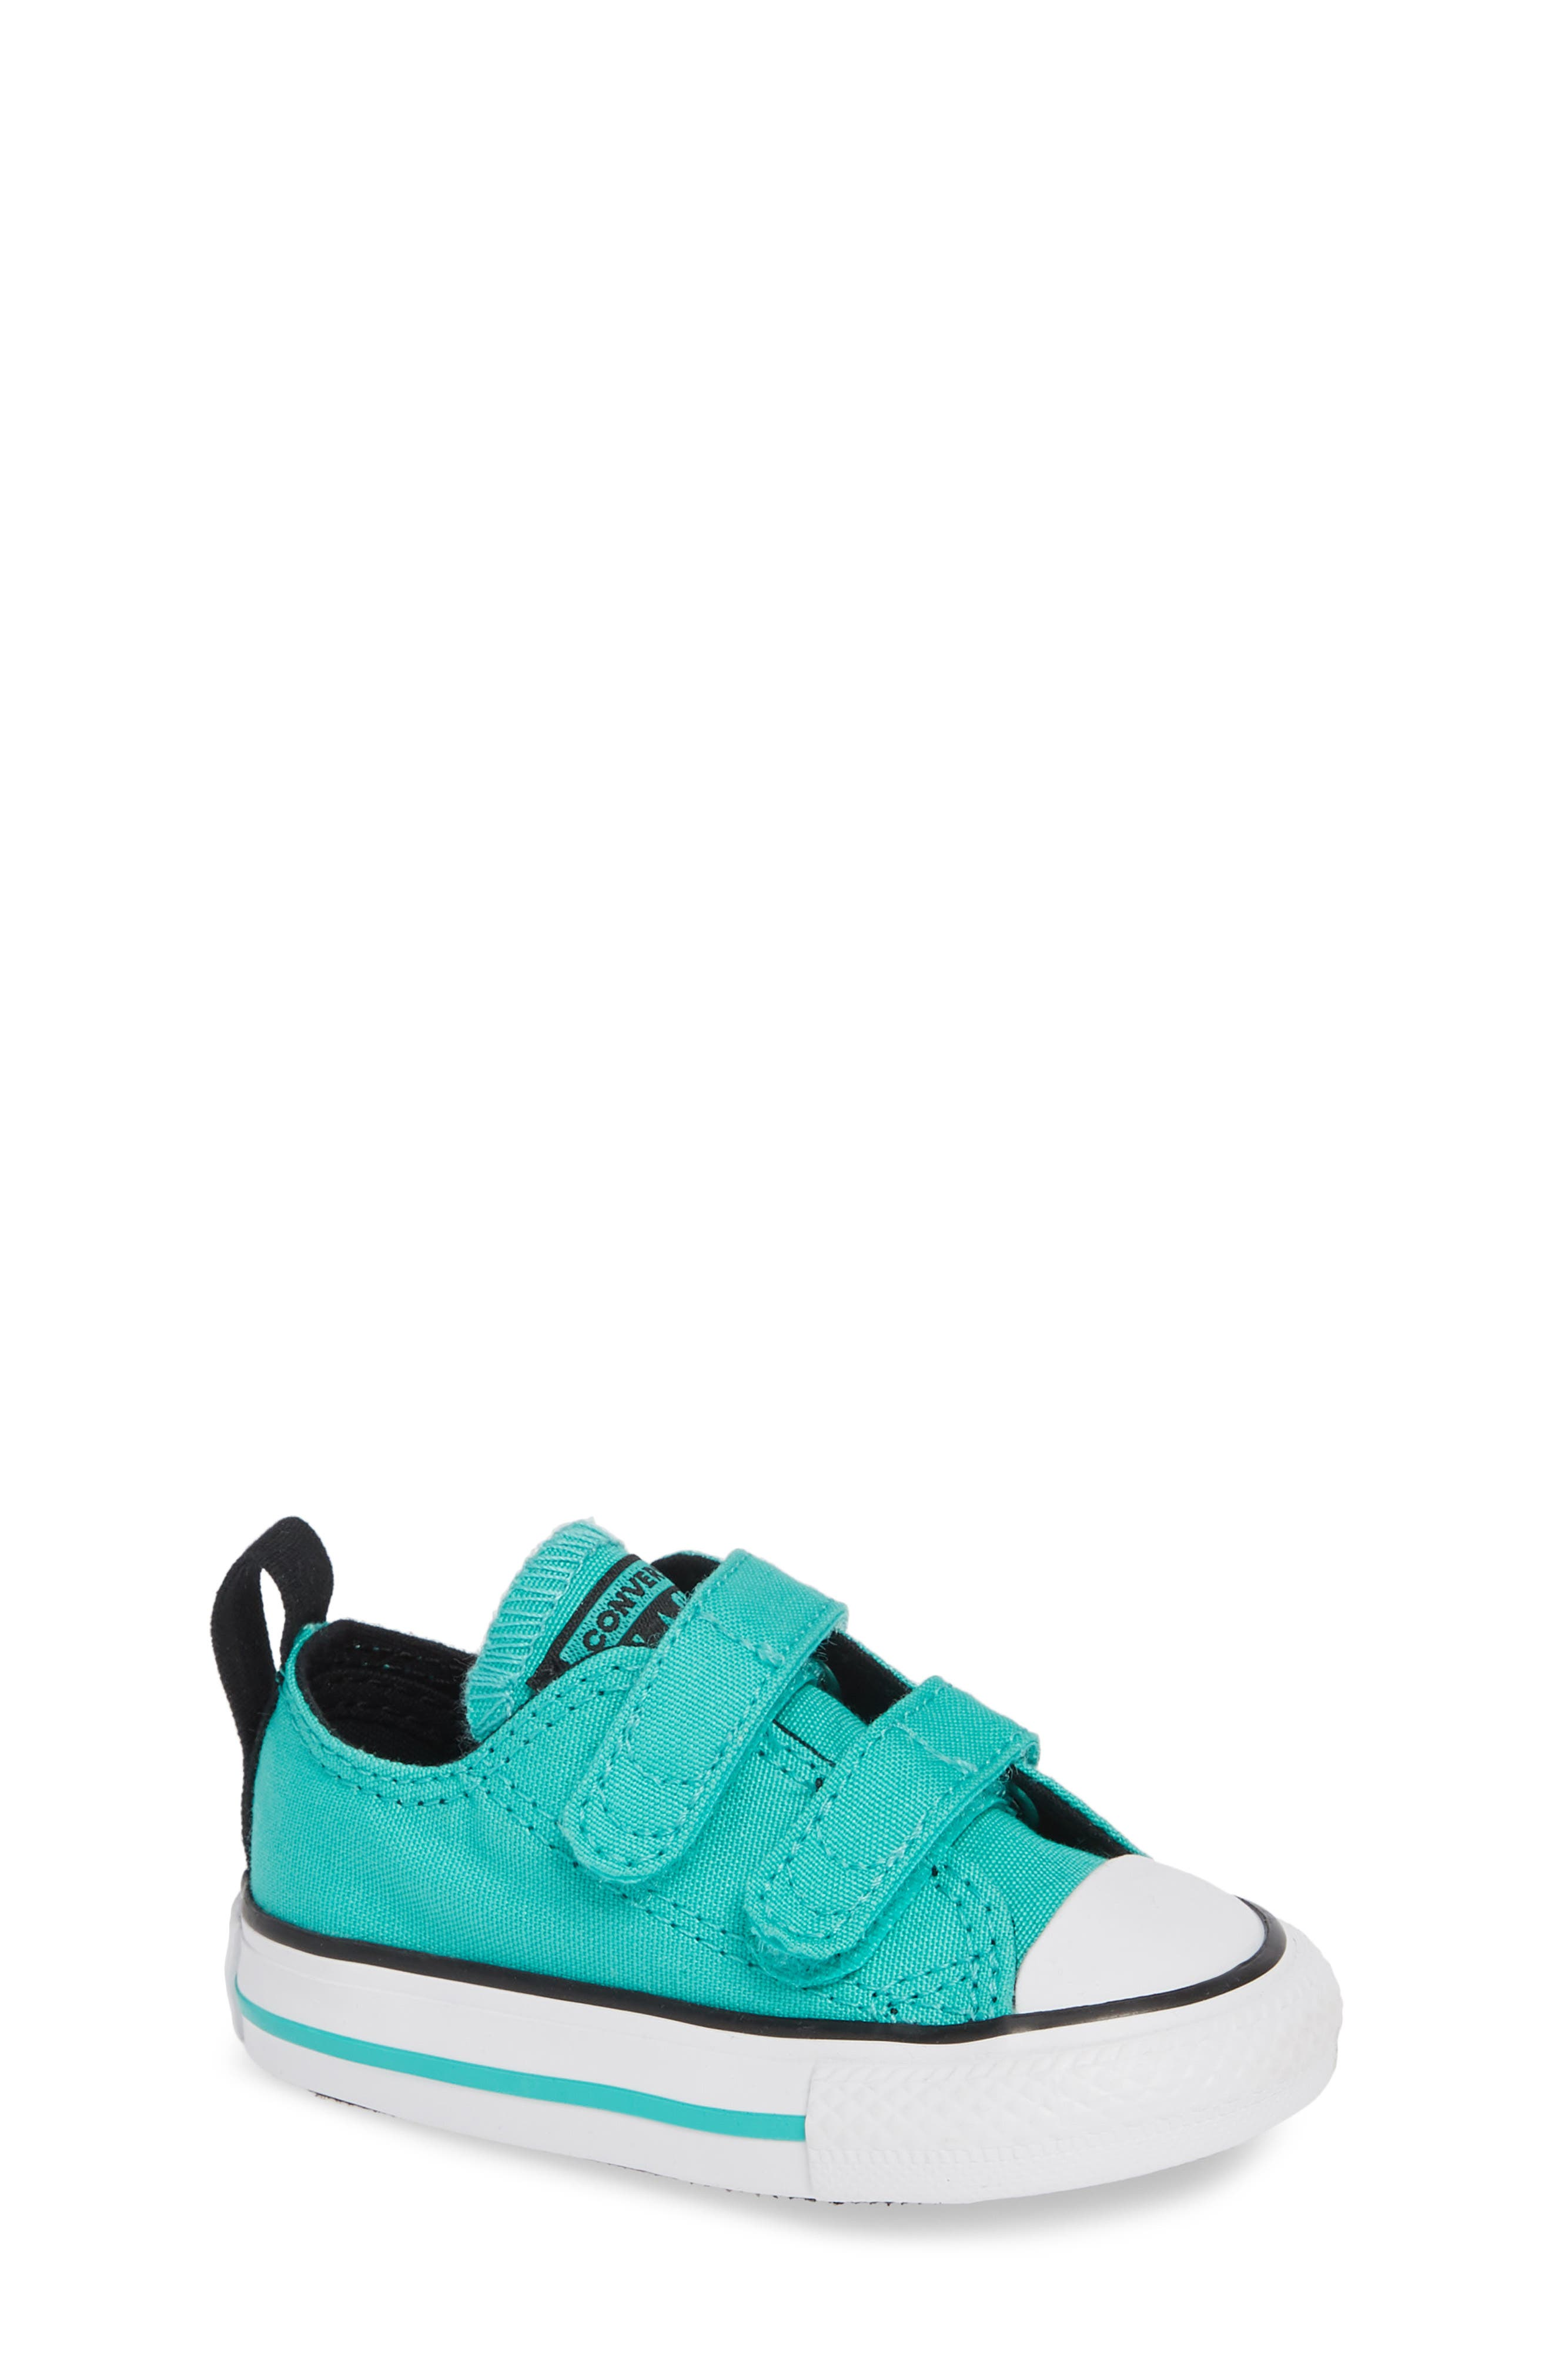 Chuck Taylor<sup>®</sup> 'Double Strap' Sneaker,                         Main,                         color, PURE TEAL